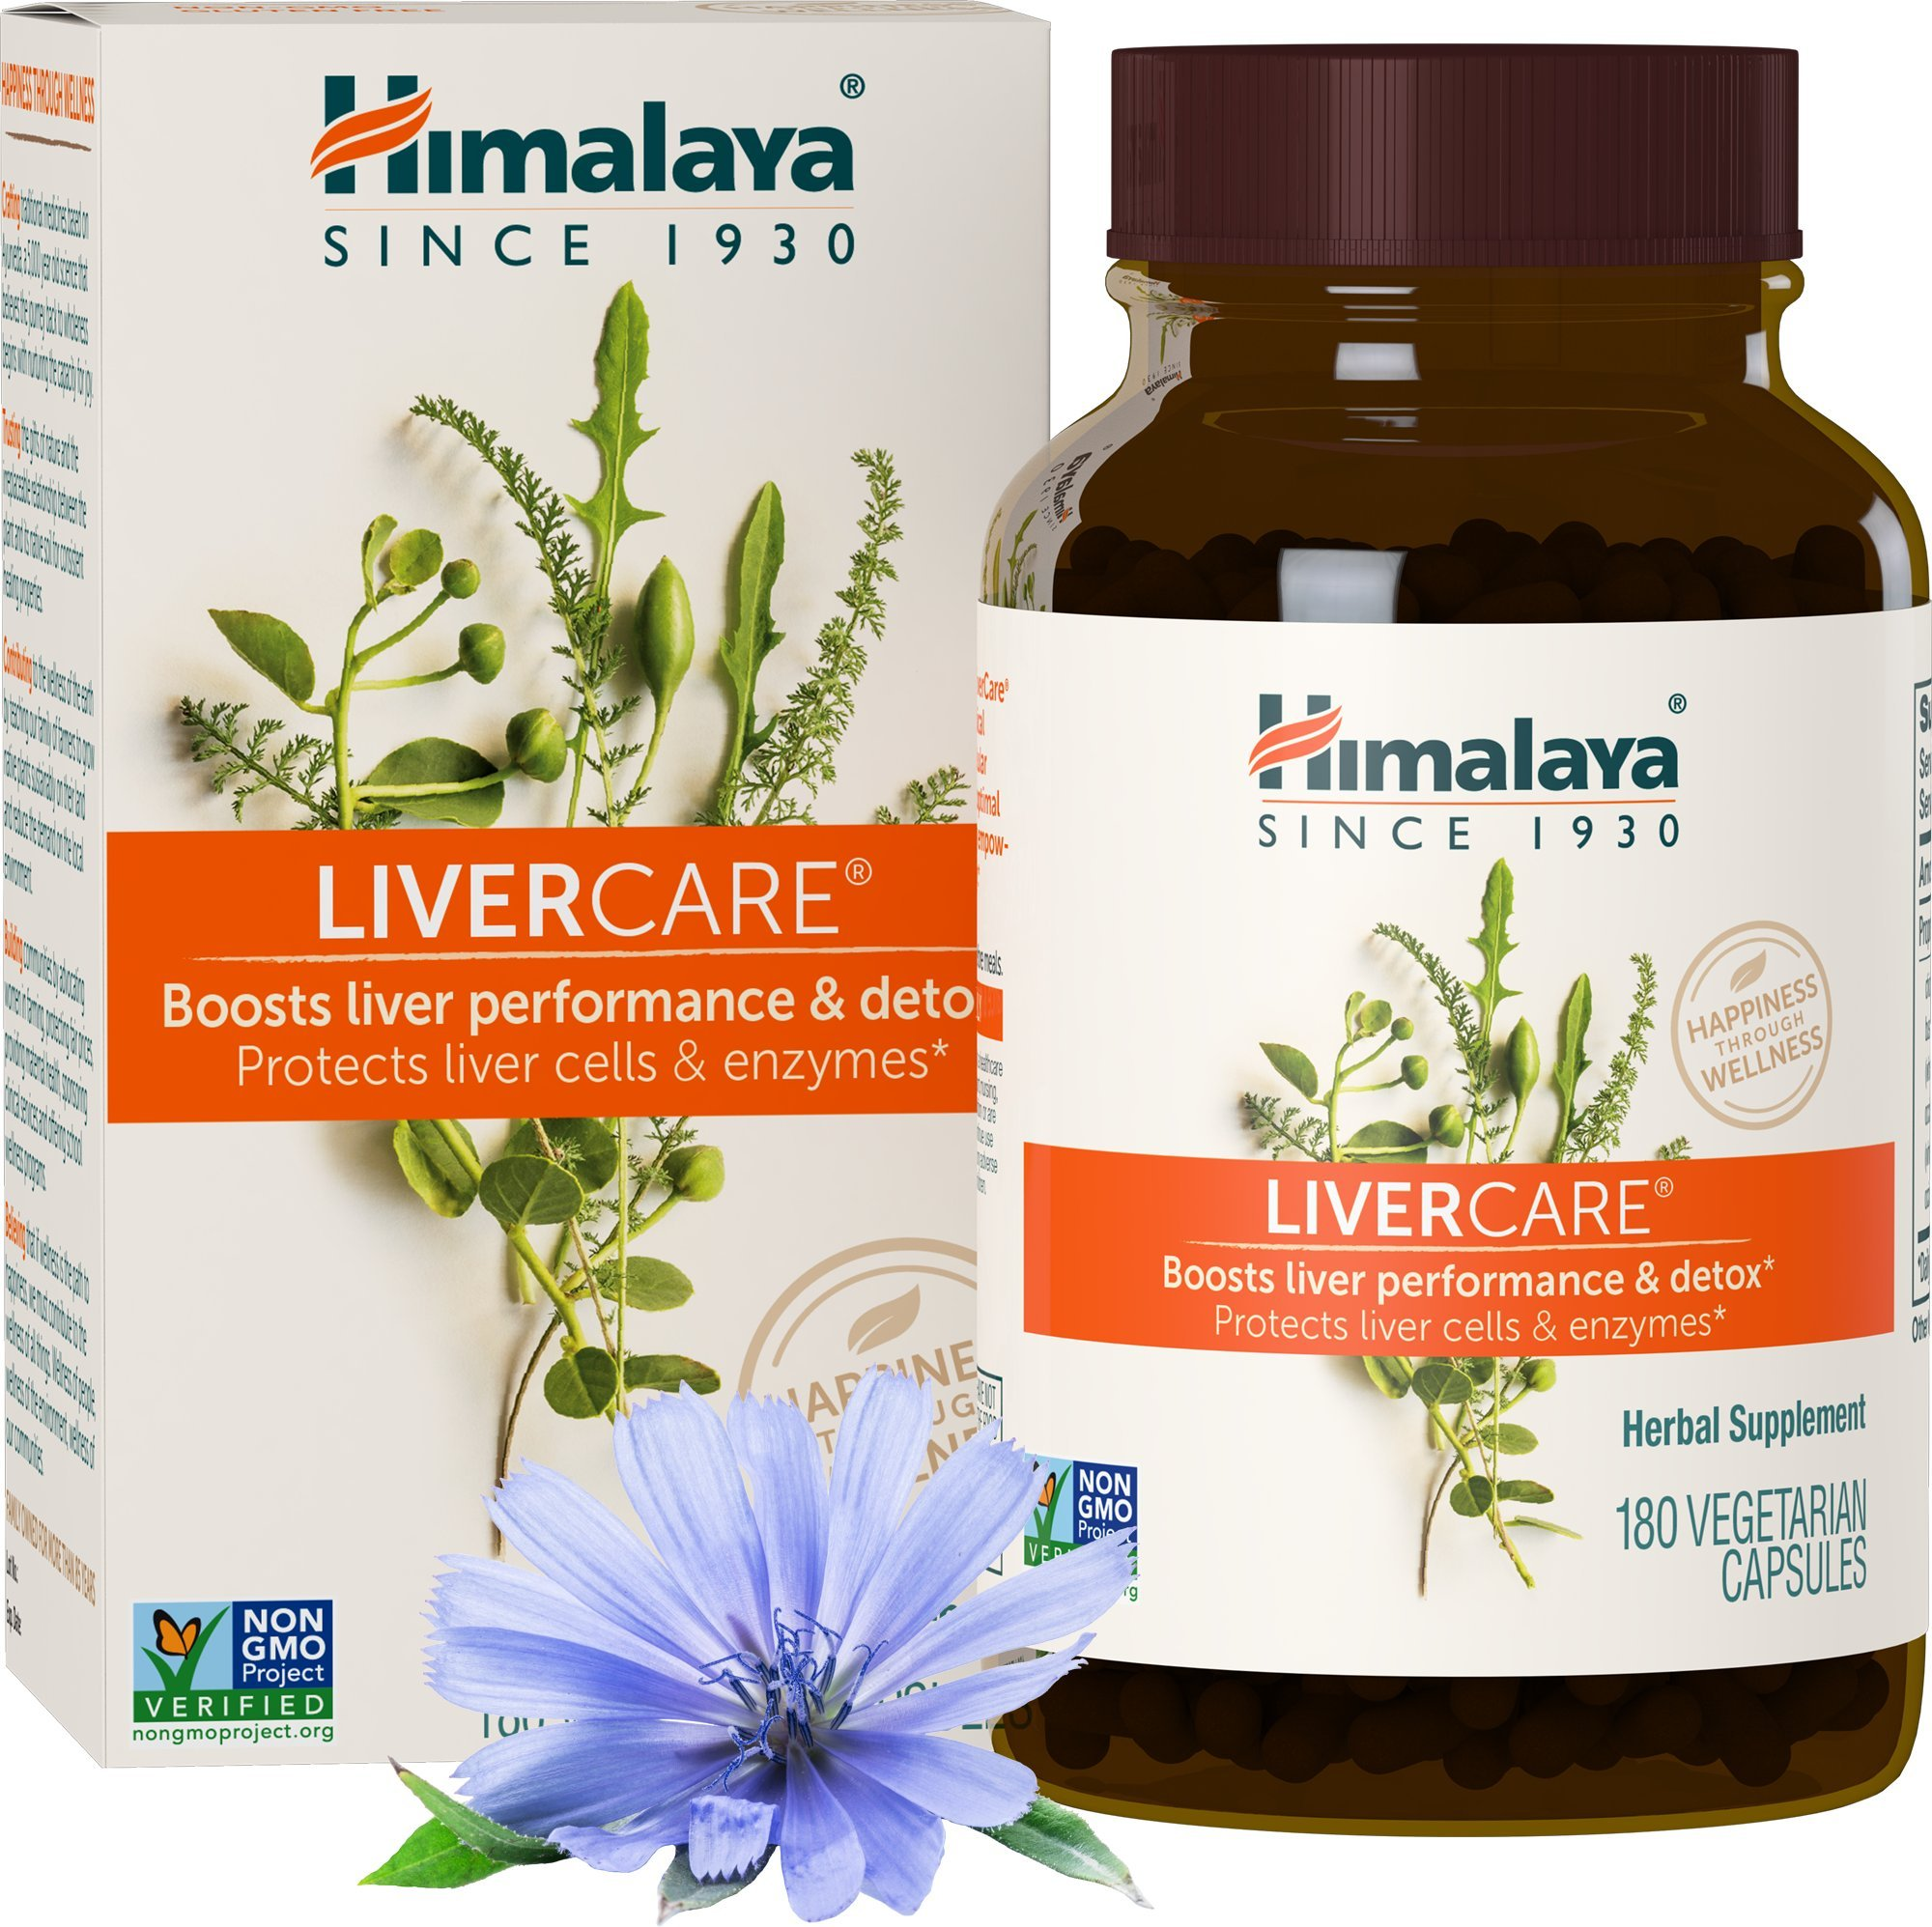 Cheapest amazon herbs - Himalaya Livercare Liv 52 For Liver Cleanse And Liver Detox 375 Mg 180